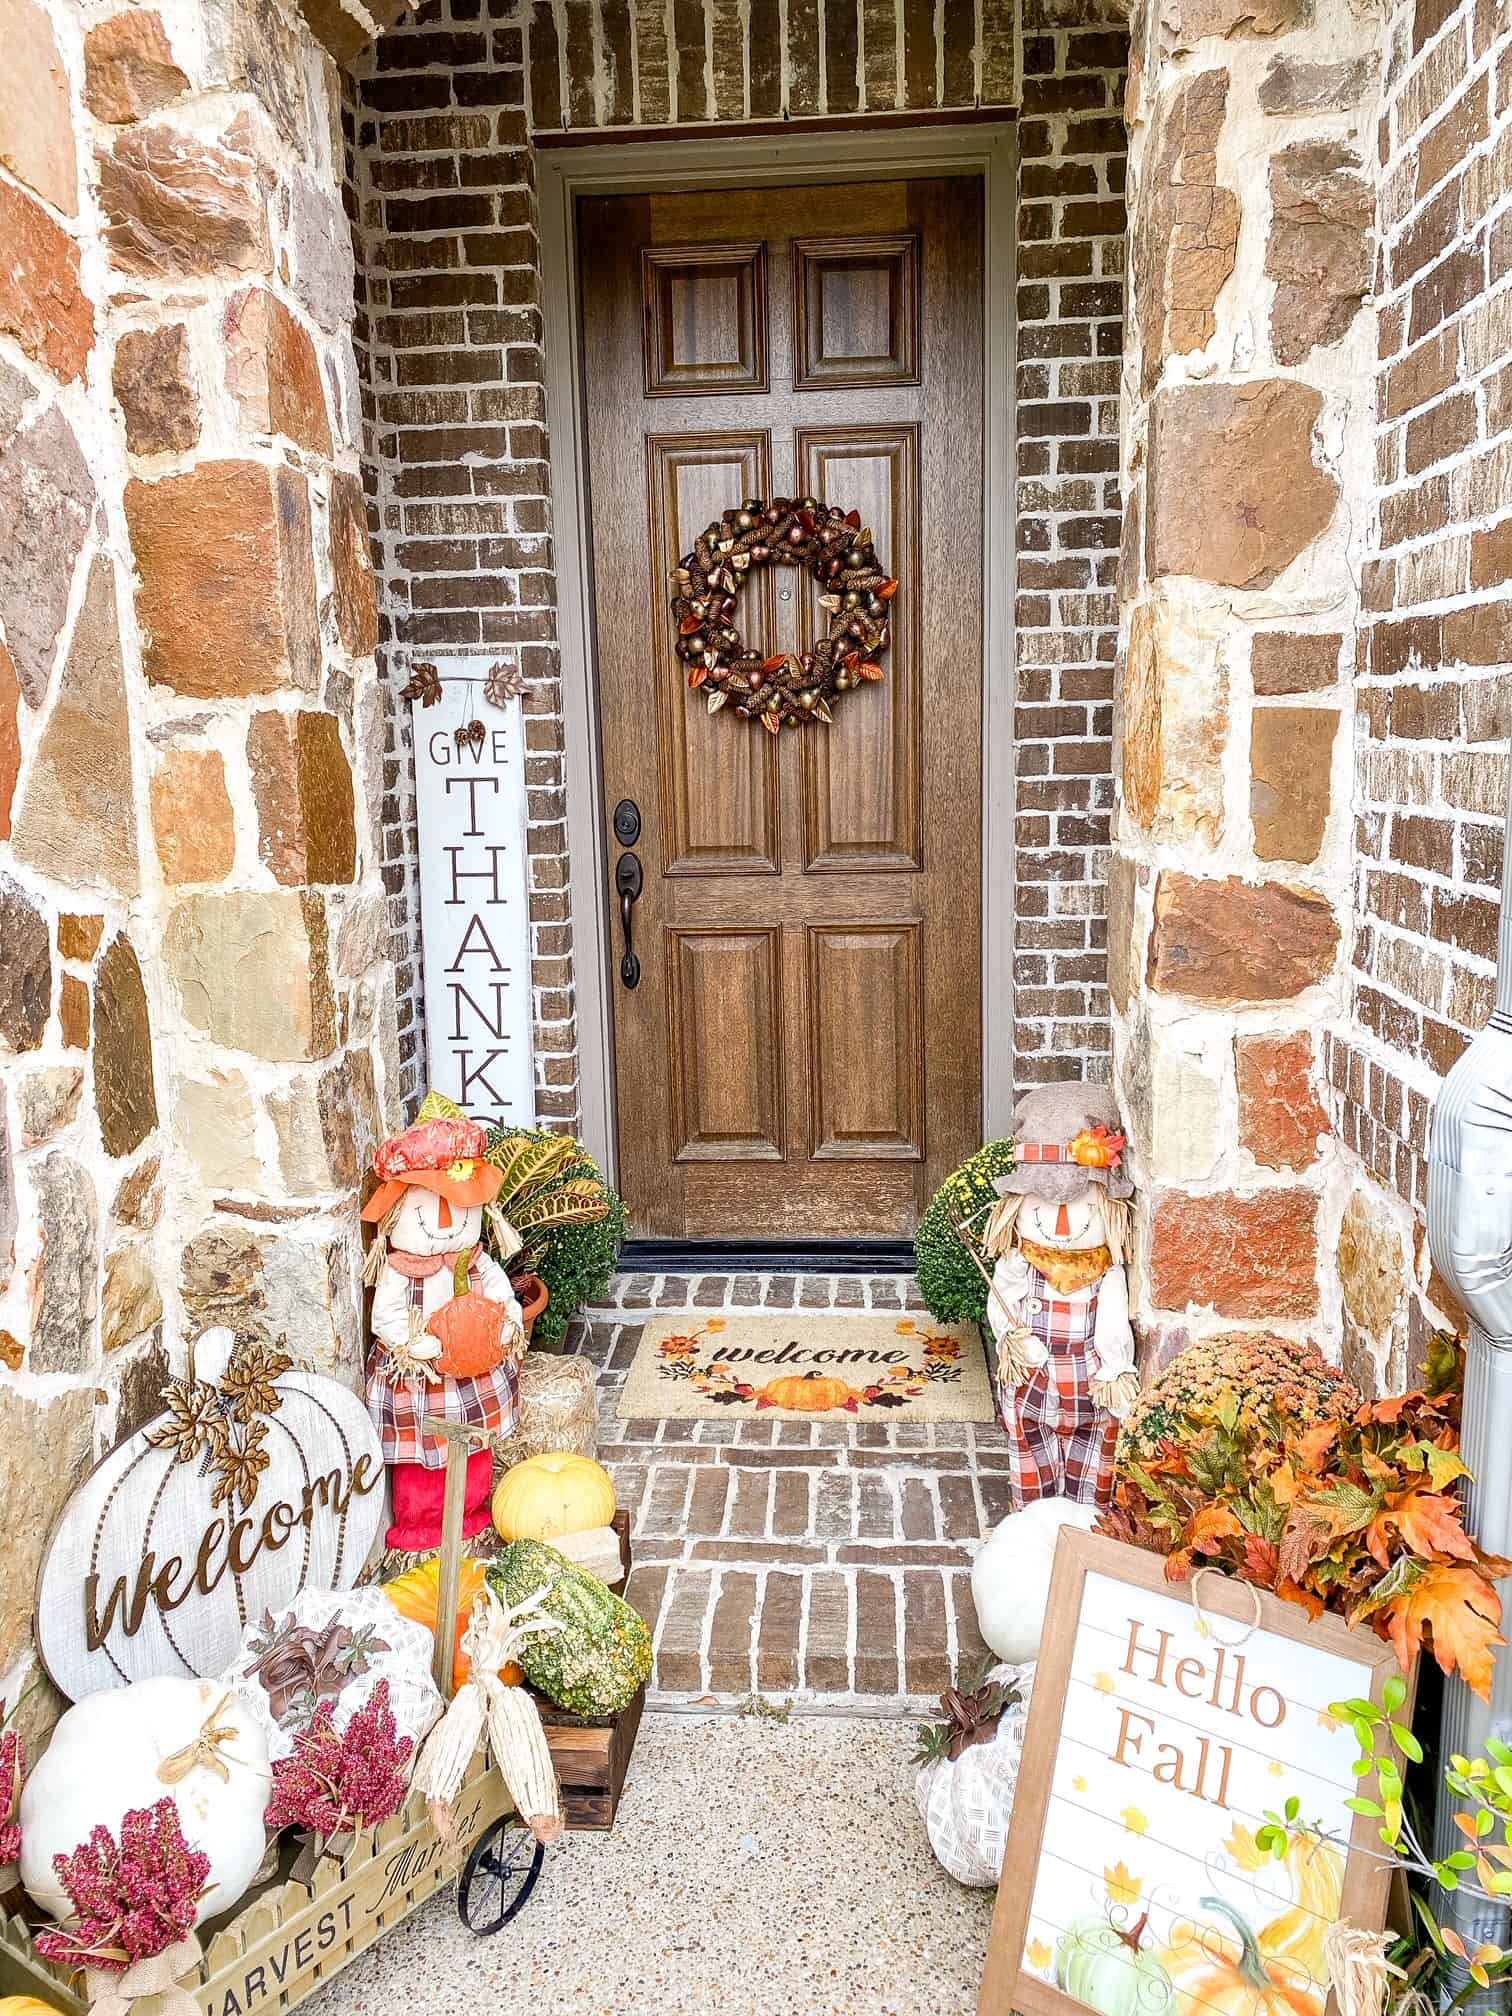 Fall Front Porch Ideas by popular Dallas life and style blog, Glamorous Versatility: image of two doodle breed dogs sitting on a front porch that decorated with a At Home scarecrow, At home Give Thanks sign, At Home pumpkin Welcome sign, At Home wagon, At home Styrofoam pumpkins, potted mums, At Home Hello Fall wooden sign, At Home Fall Welcome mat, and At Home fall wreath.